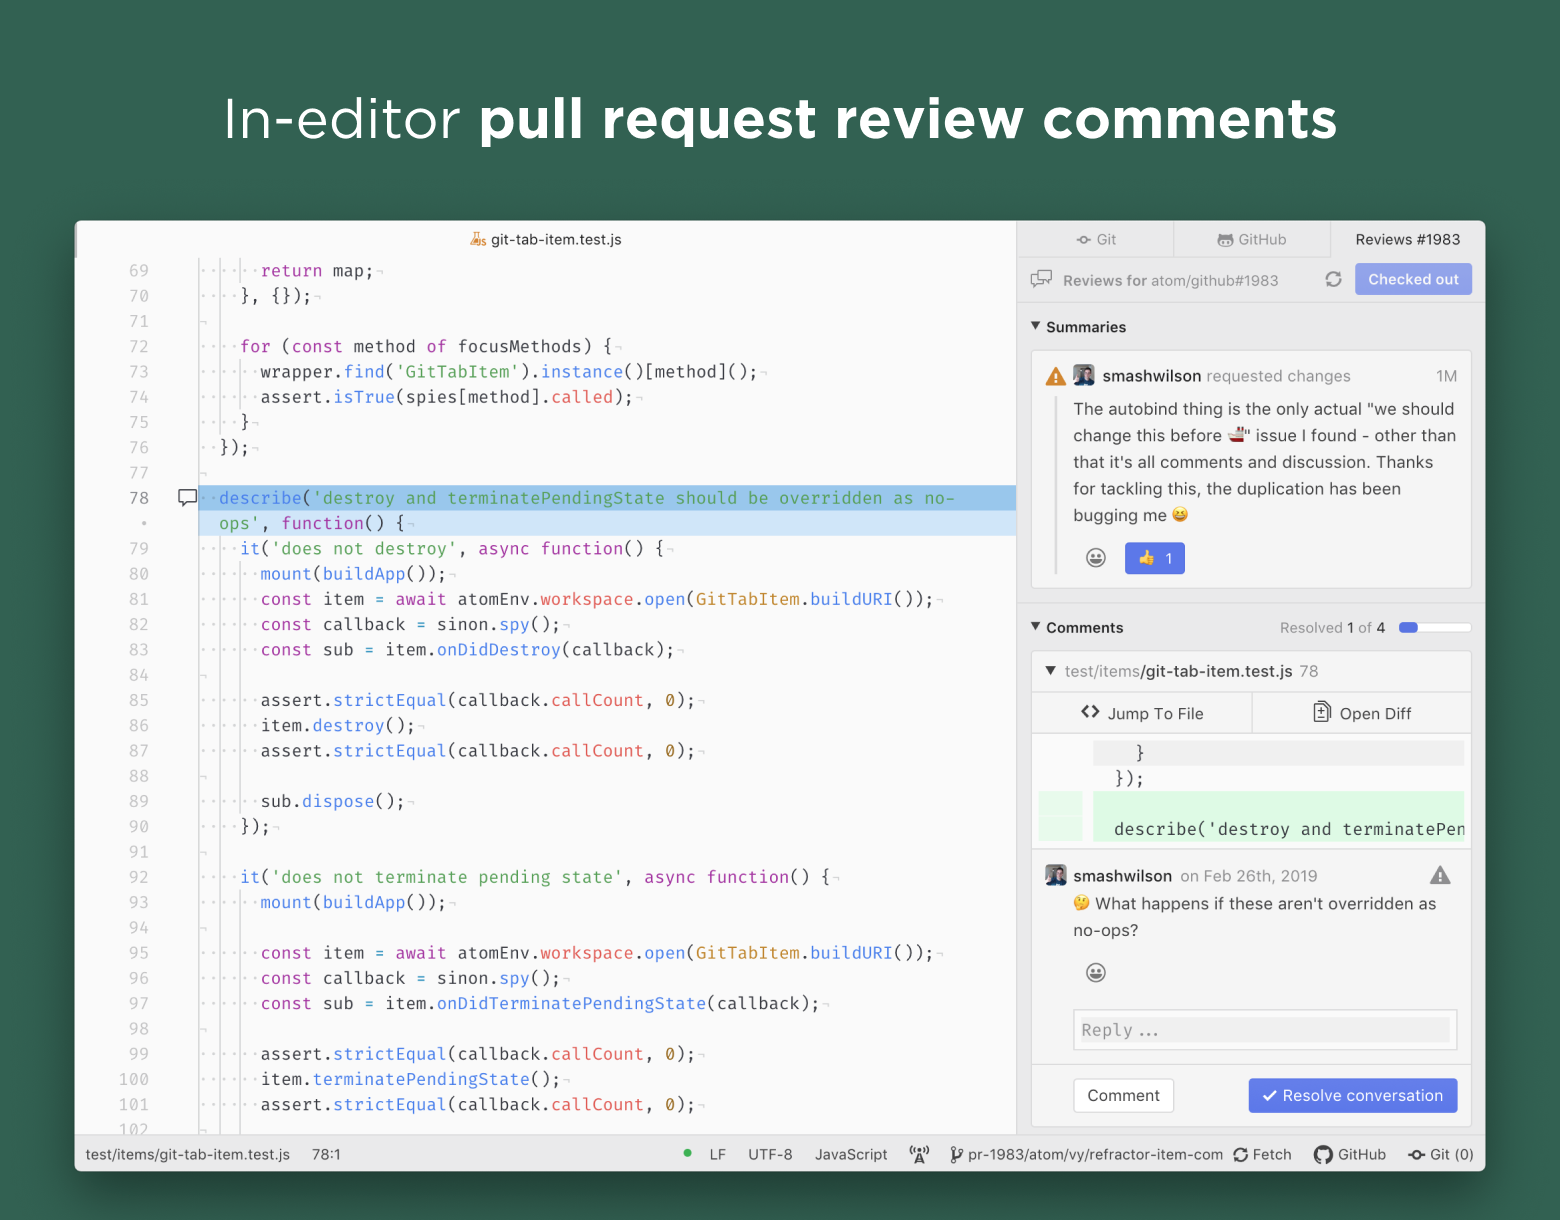 In-editor pull request review comments